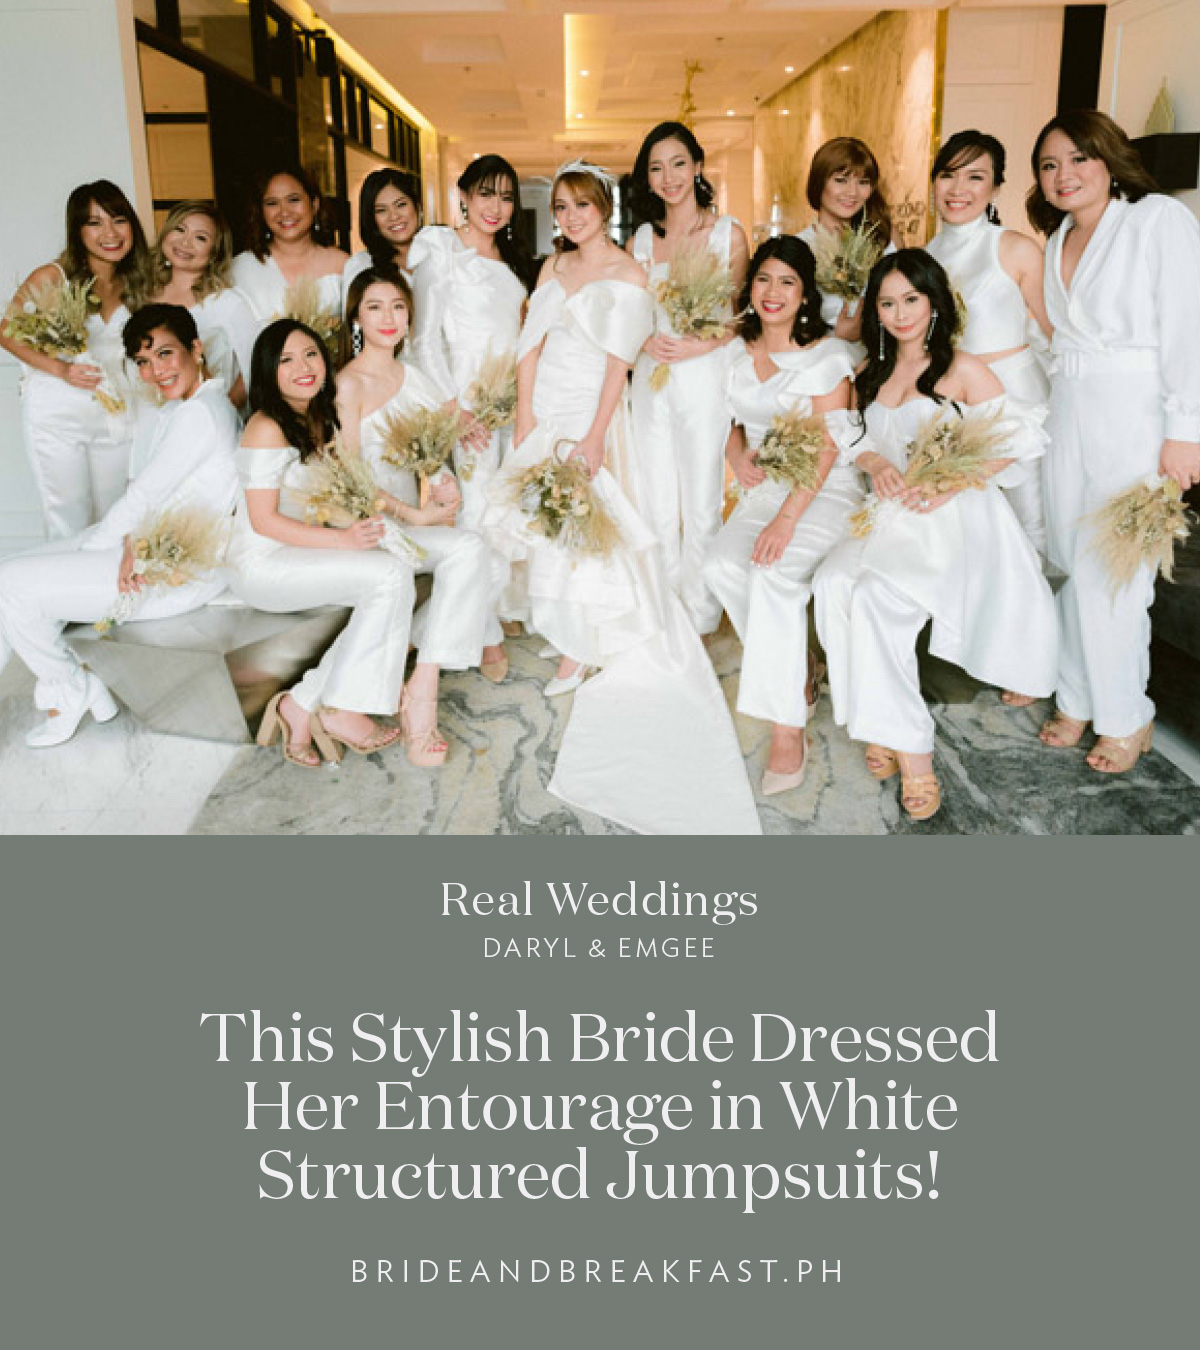 This Stylish Bride Dressed Her Entourage in White Structured Jumpsuits!